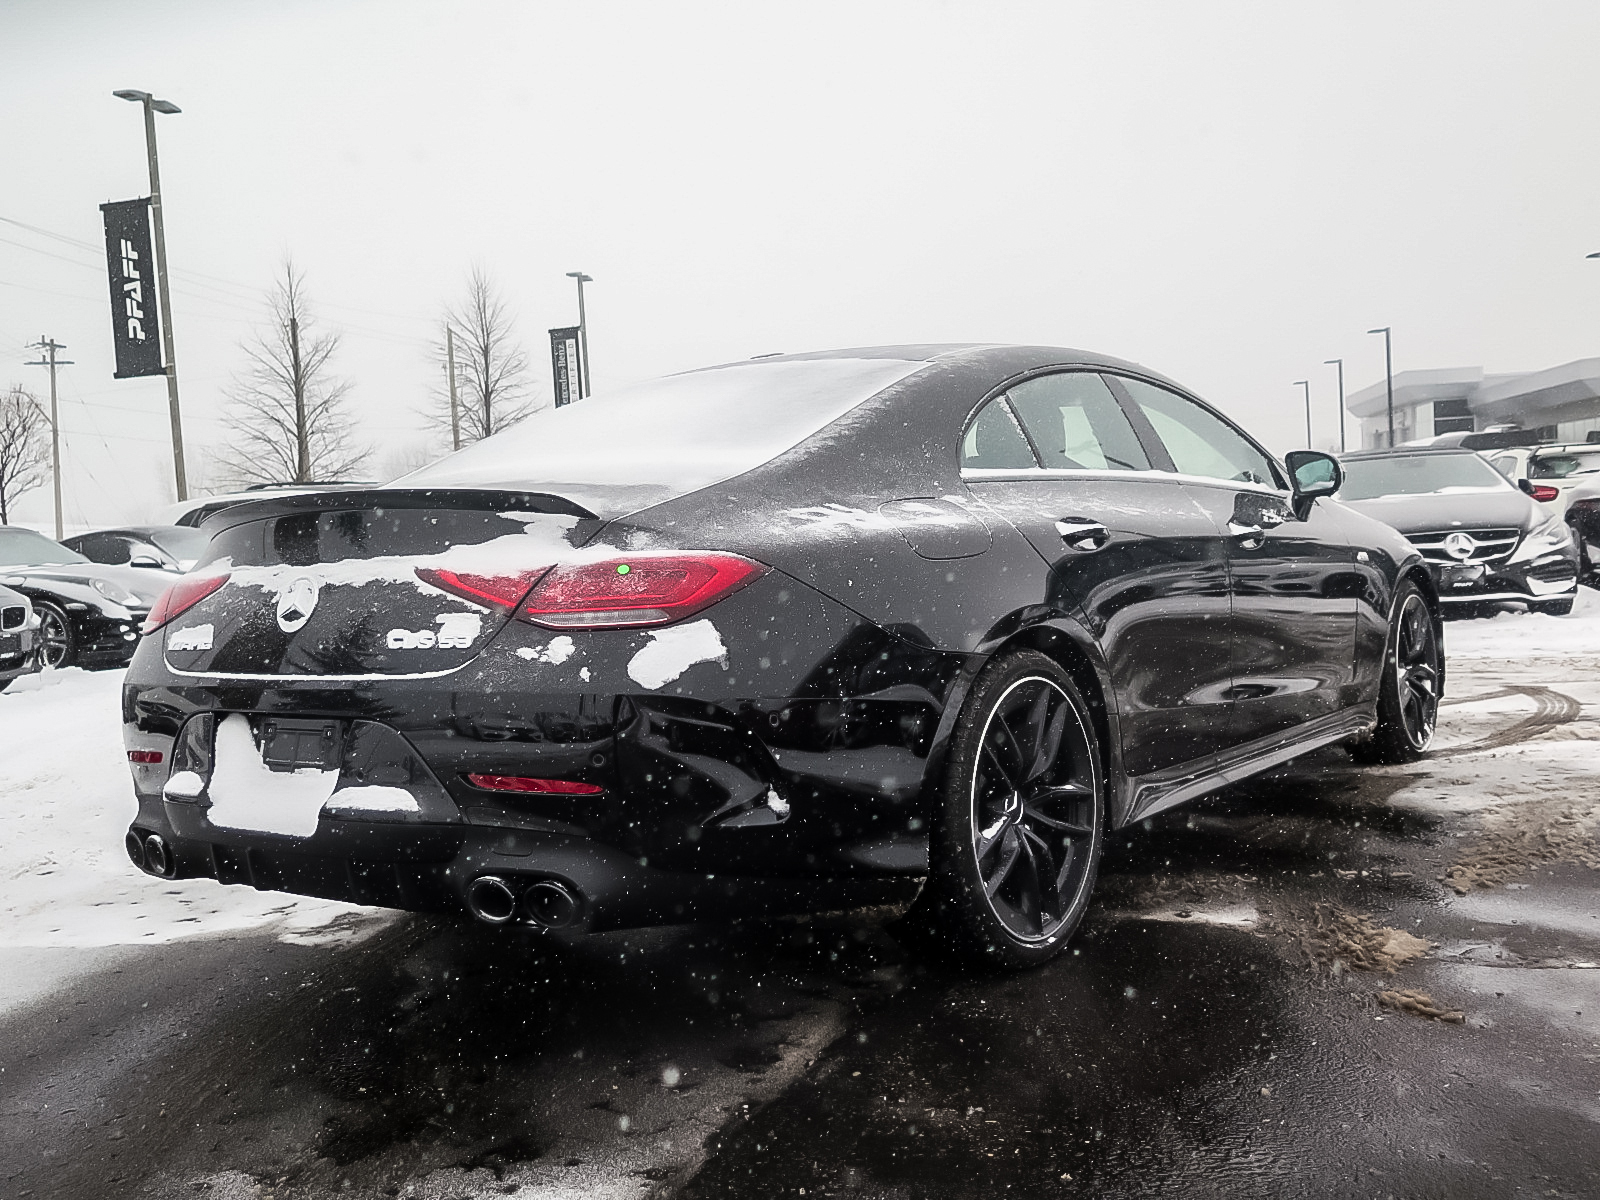 New 2020 Mercedes-Benz CLS53 AMG 4MATIC+ Coupe